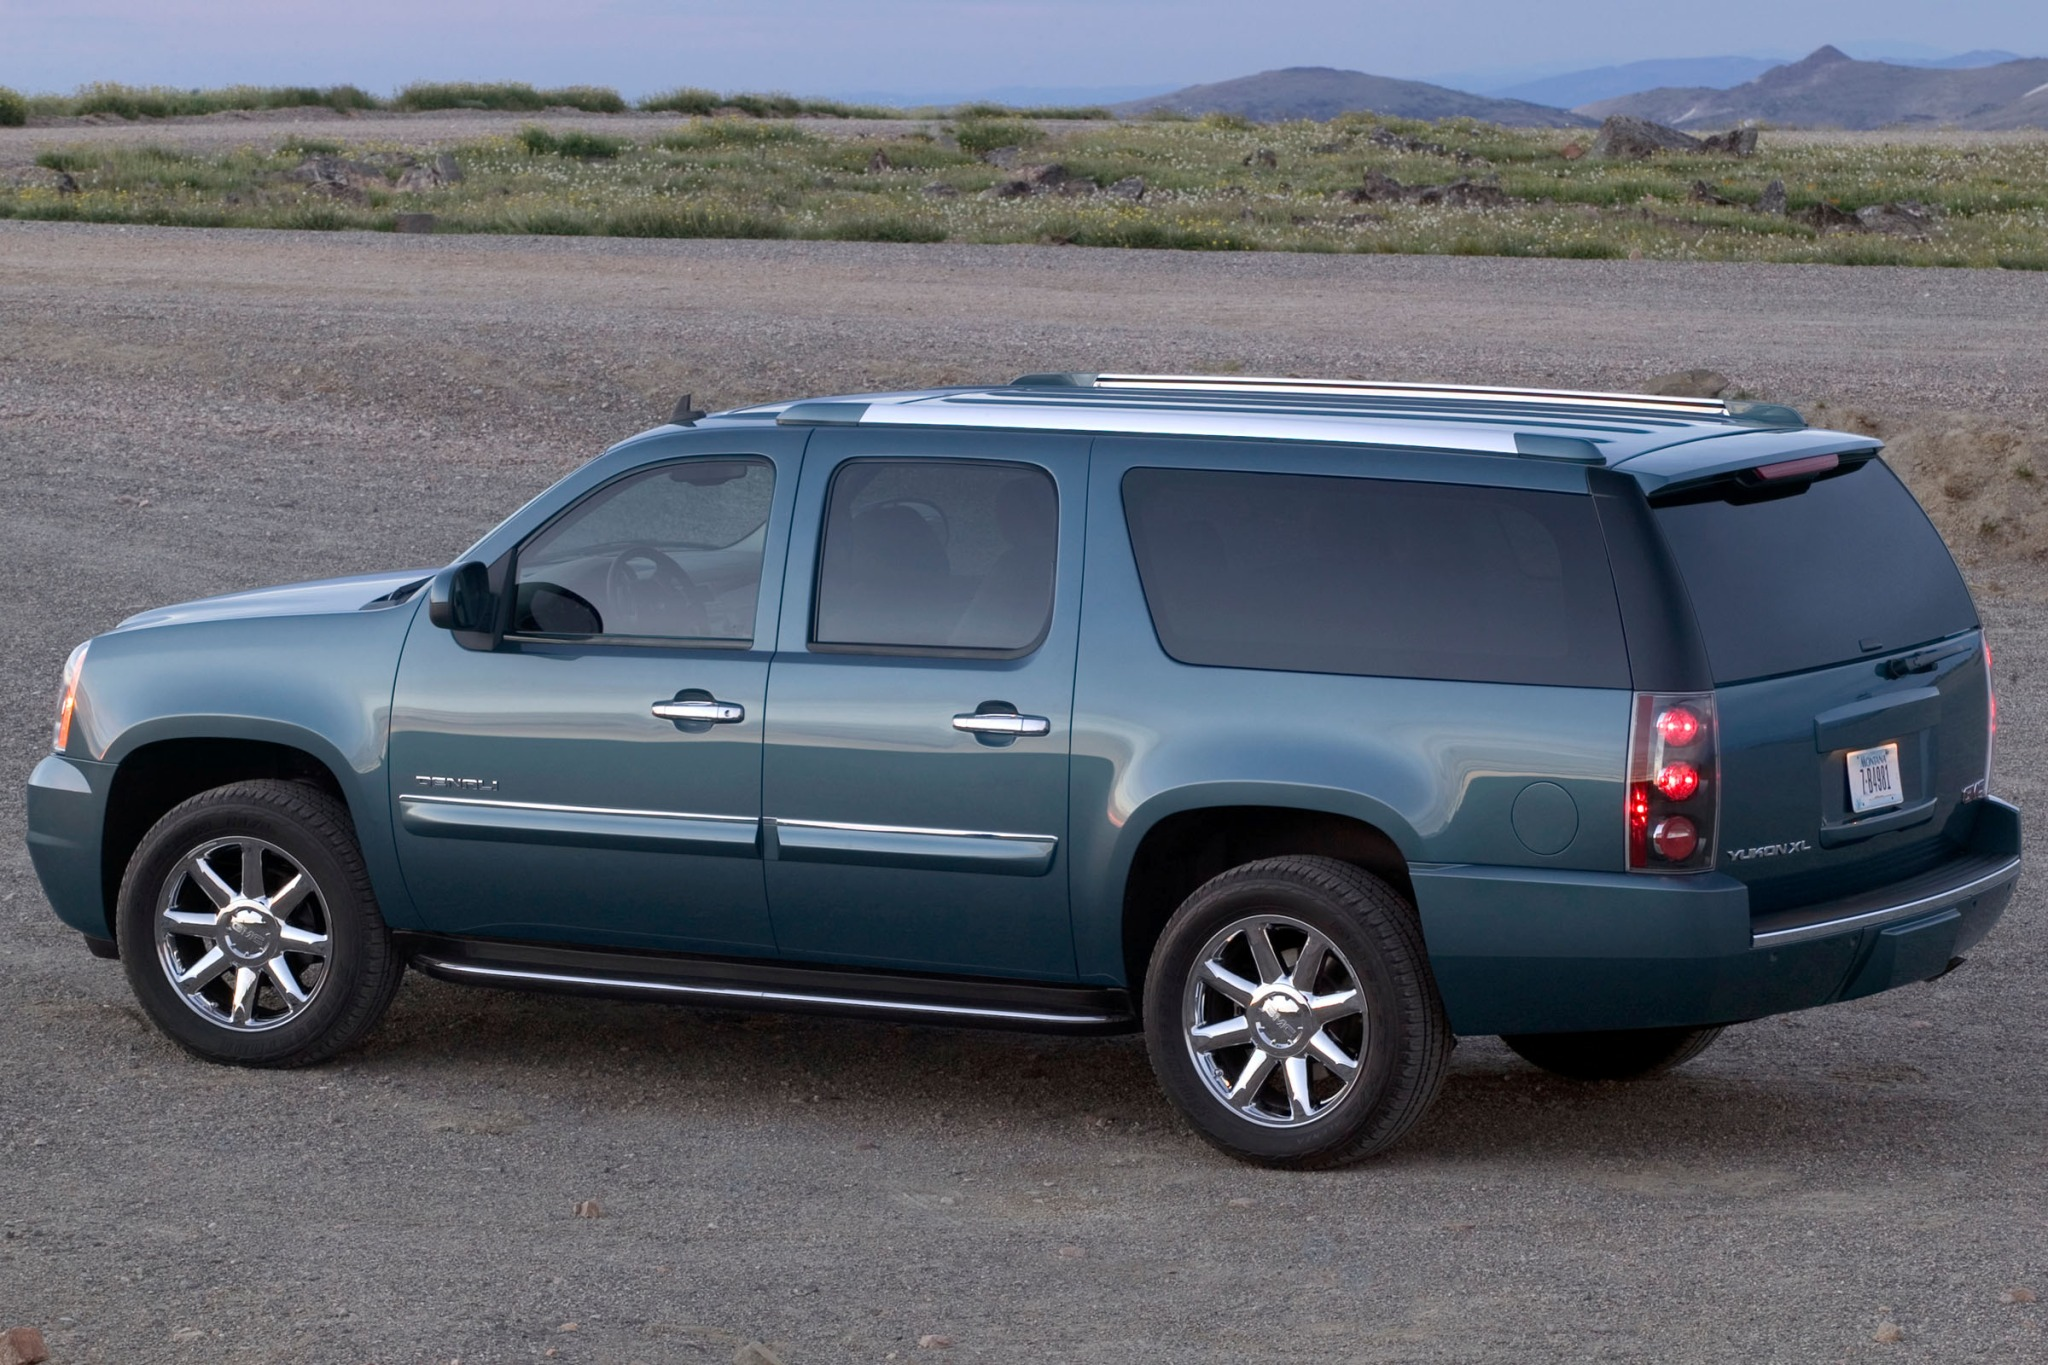 2013 GMC Yukon XL SLT 150 interior #4